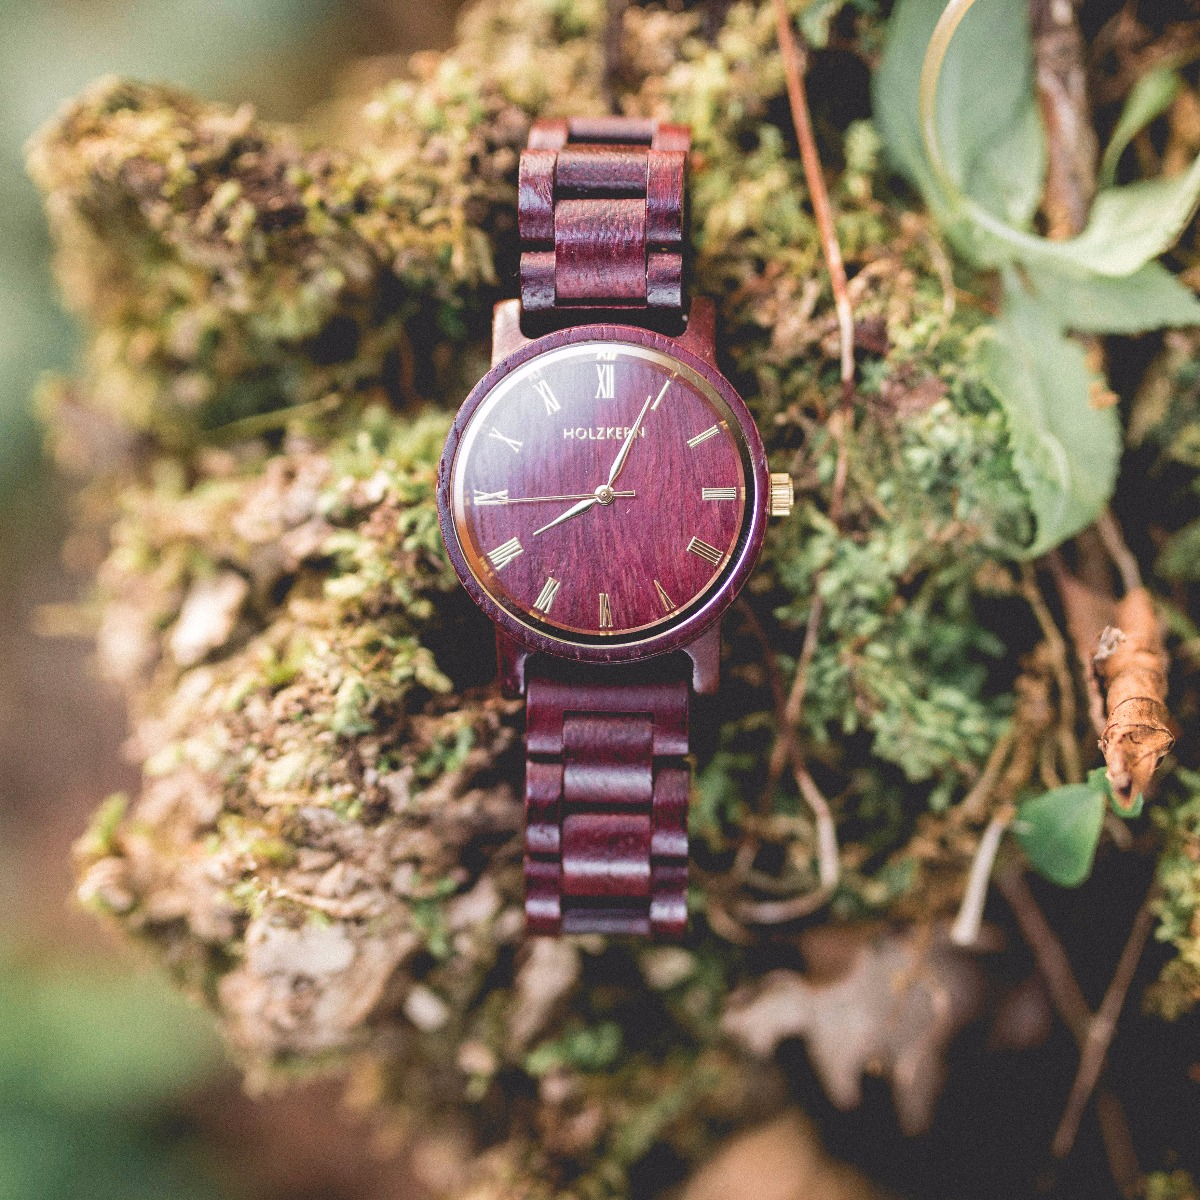 Calm AmaranthAmaranth  Holzkern Wood Watches